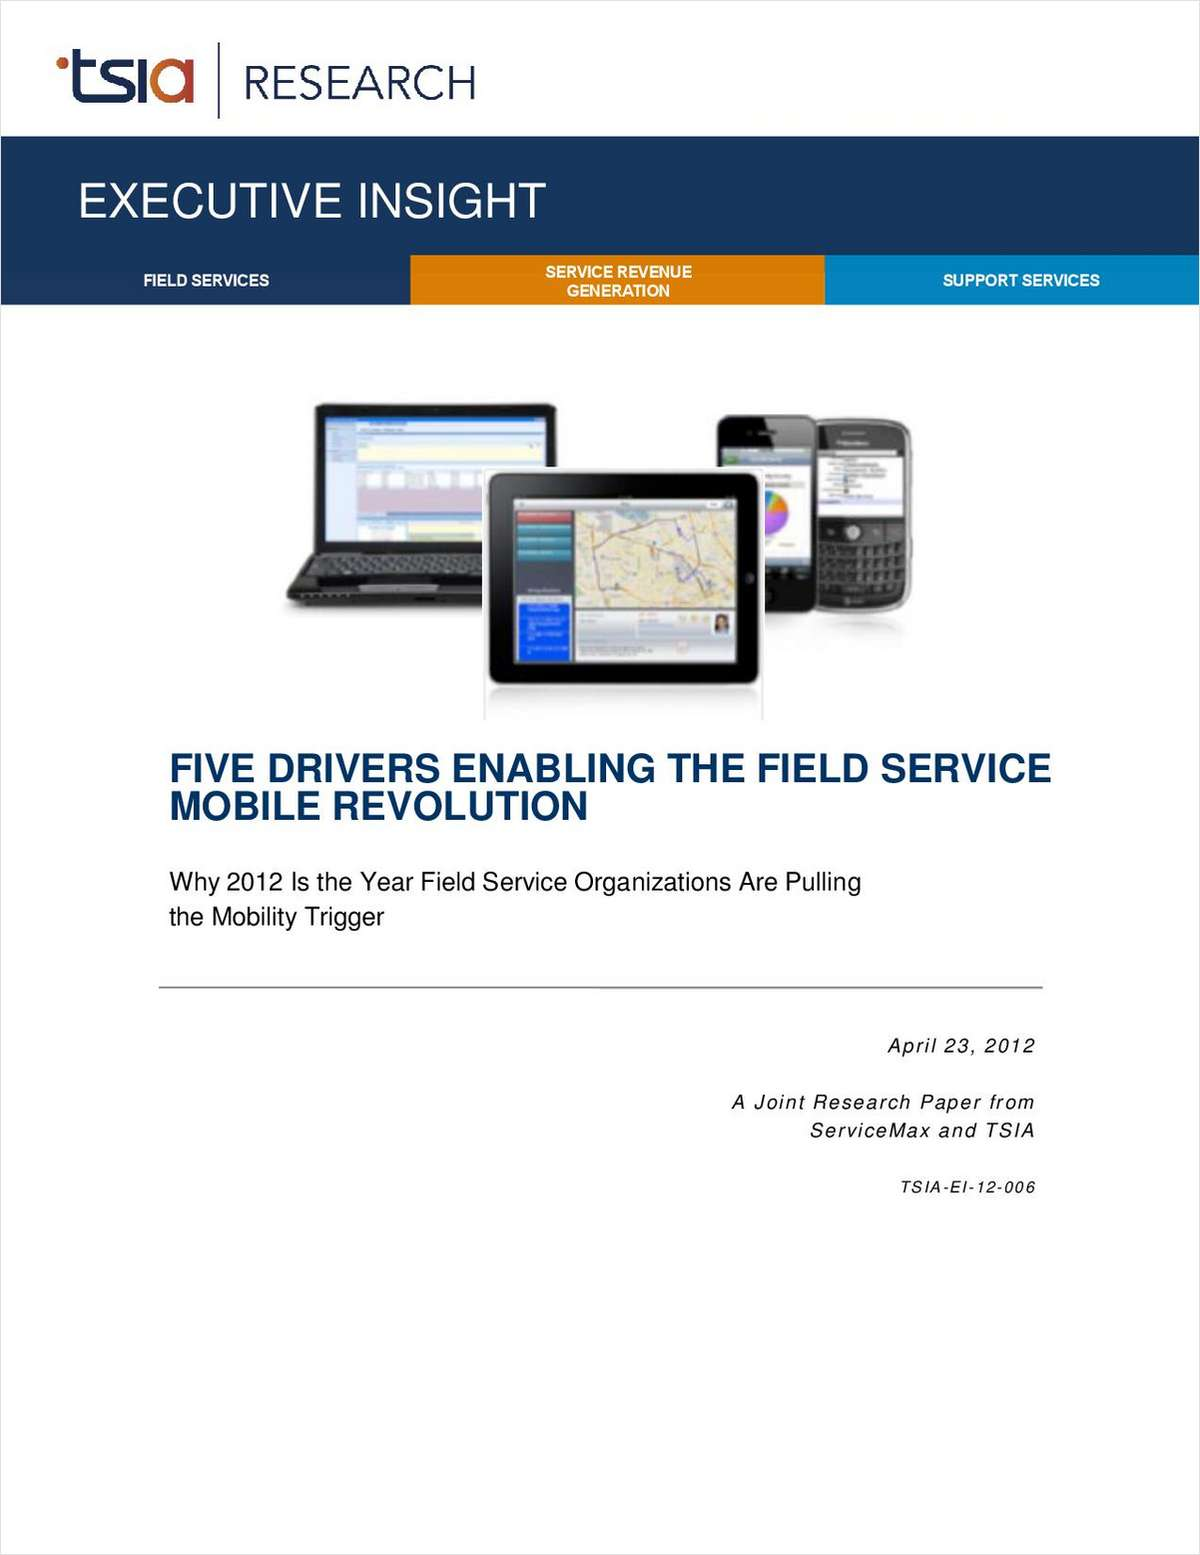 5 Key Factors Transforming the Mobility of Field Services